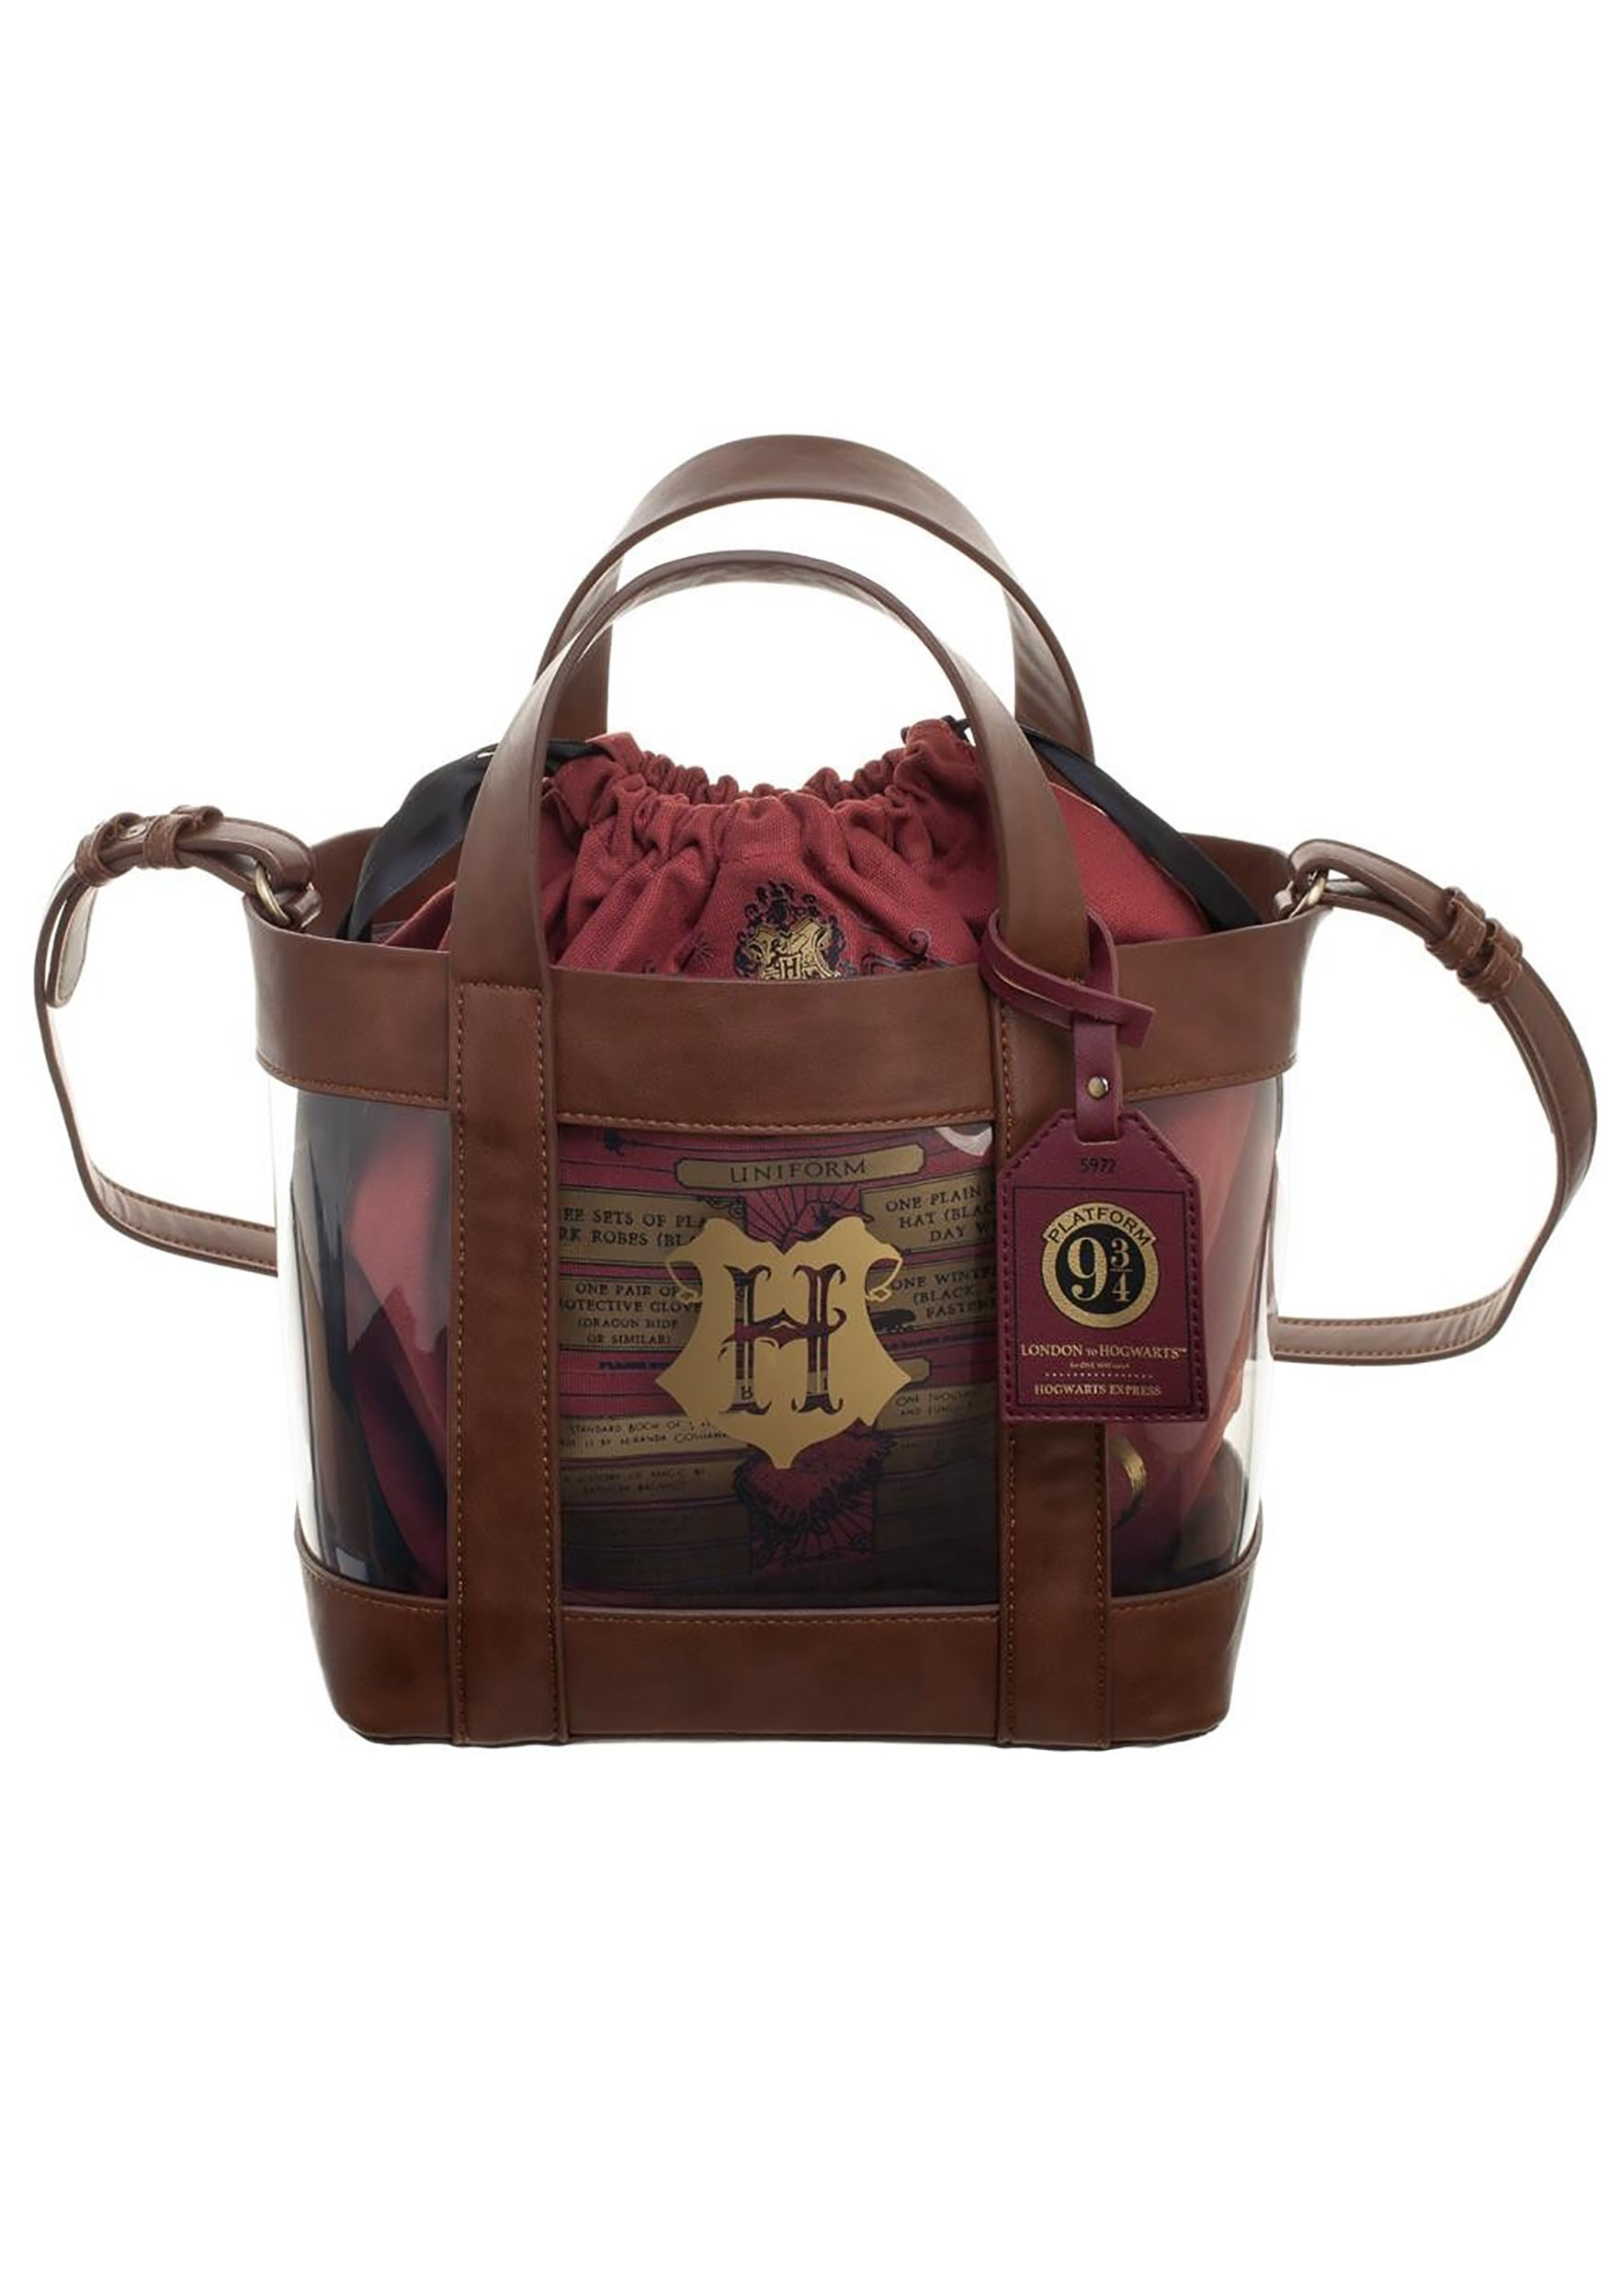 Harry Potter Clear Tote w/ Cinch Bag